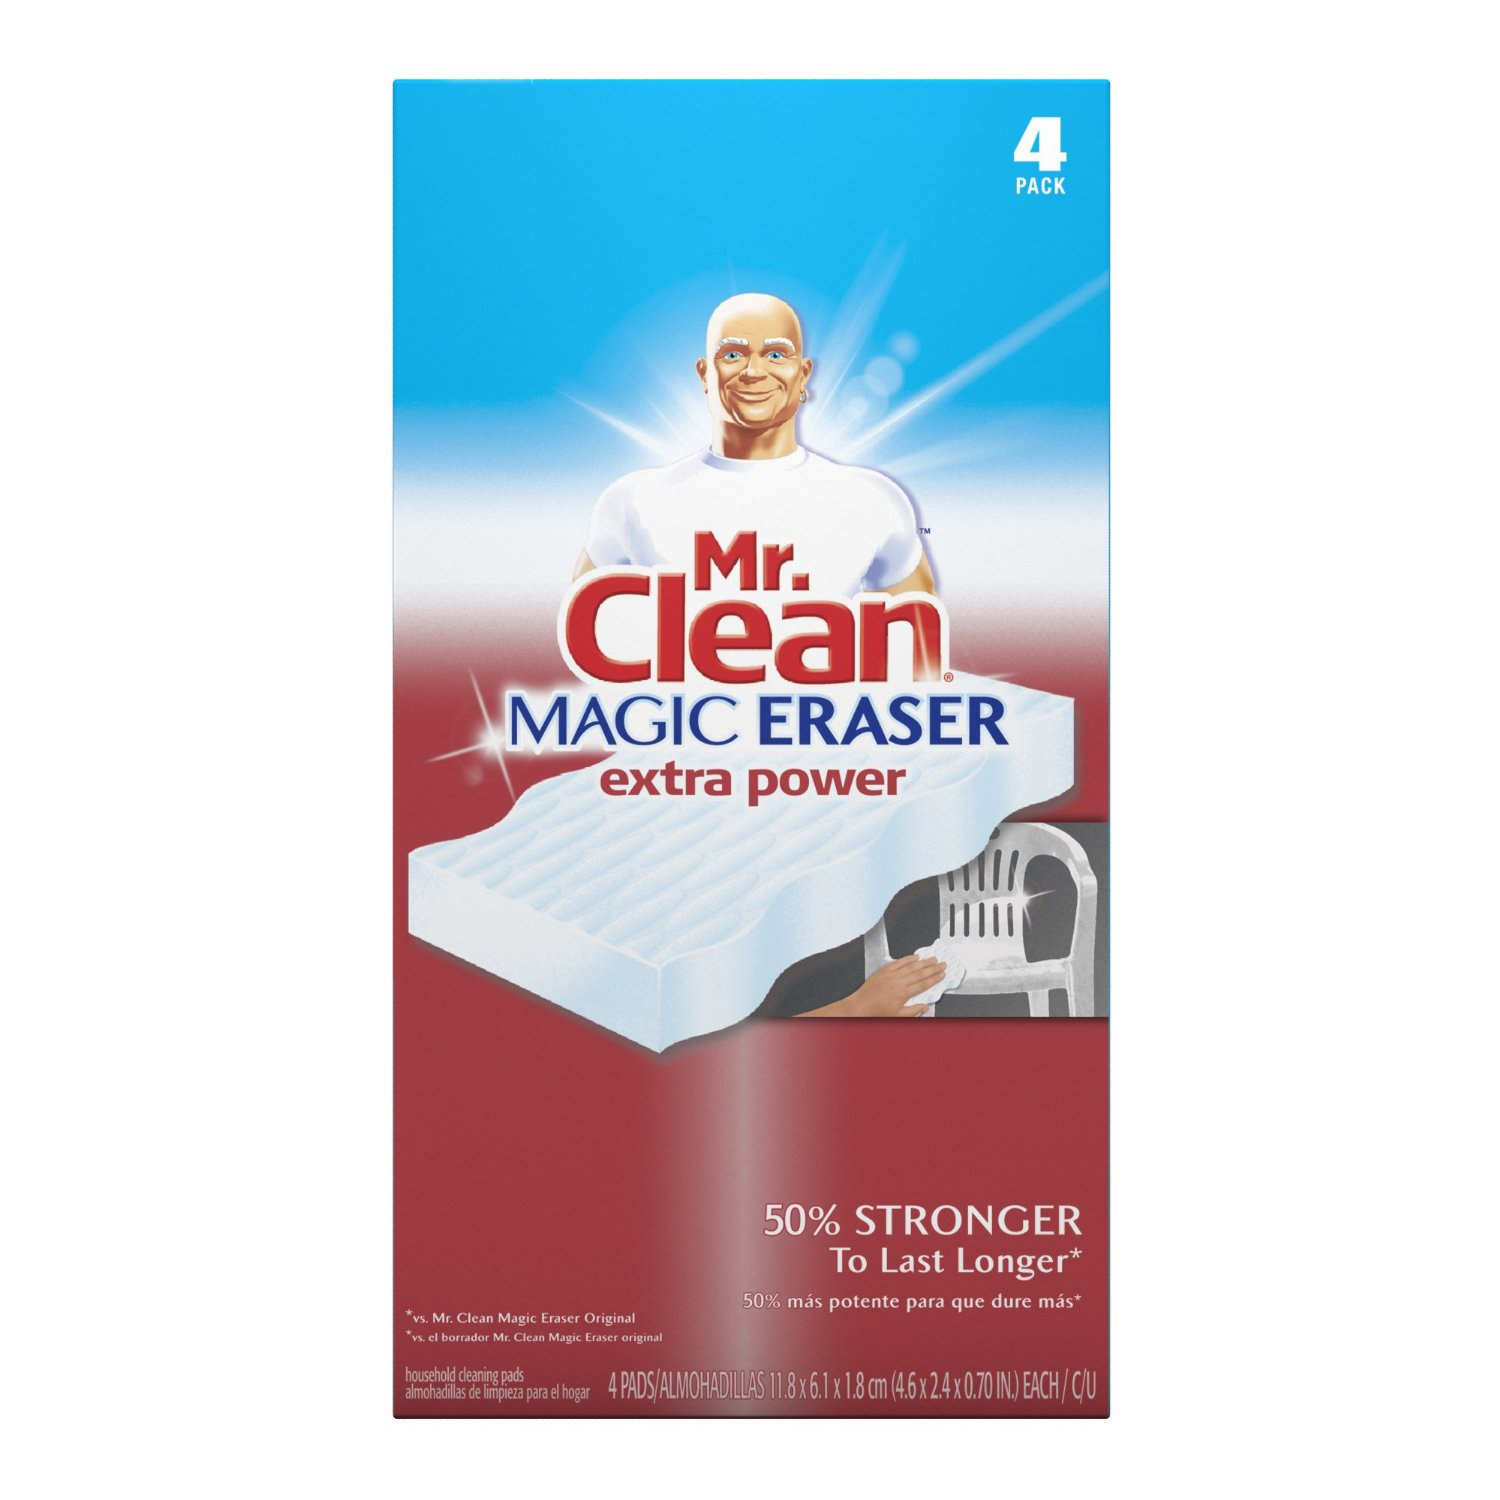 photo about Mr Clean Coupons Printable titled Mr refreshing magic eraser coupon 2018 - Sushi offers san diego